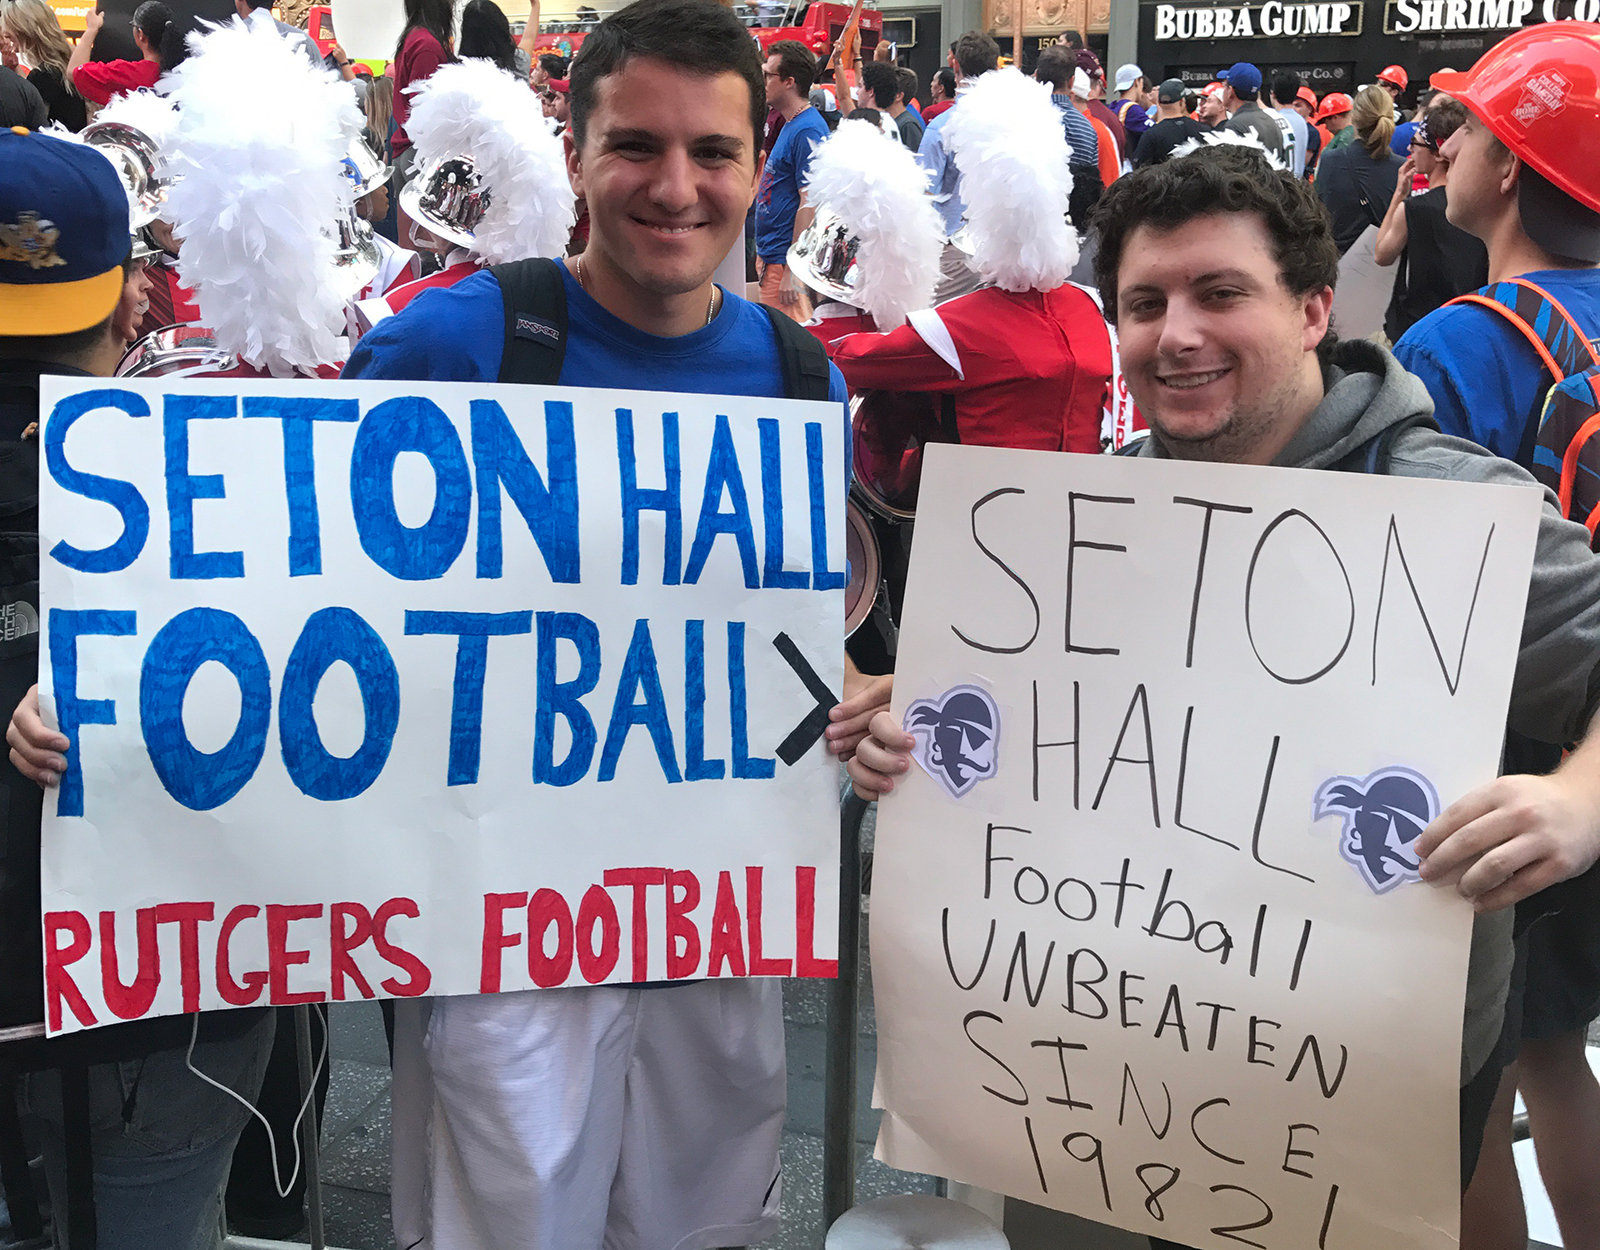 Seton Hall fans made their presence felt at GameDay